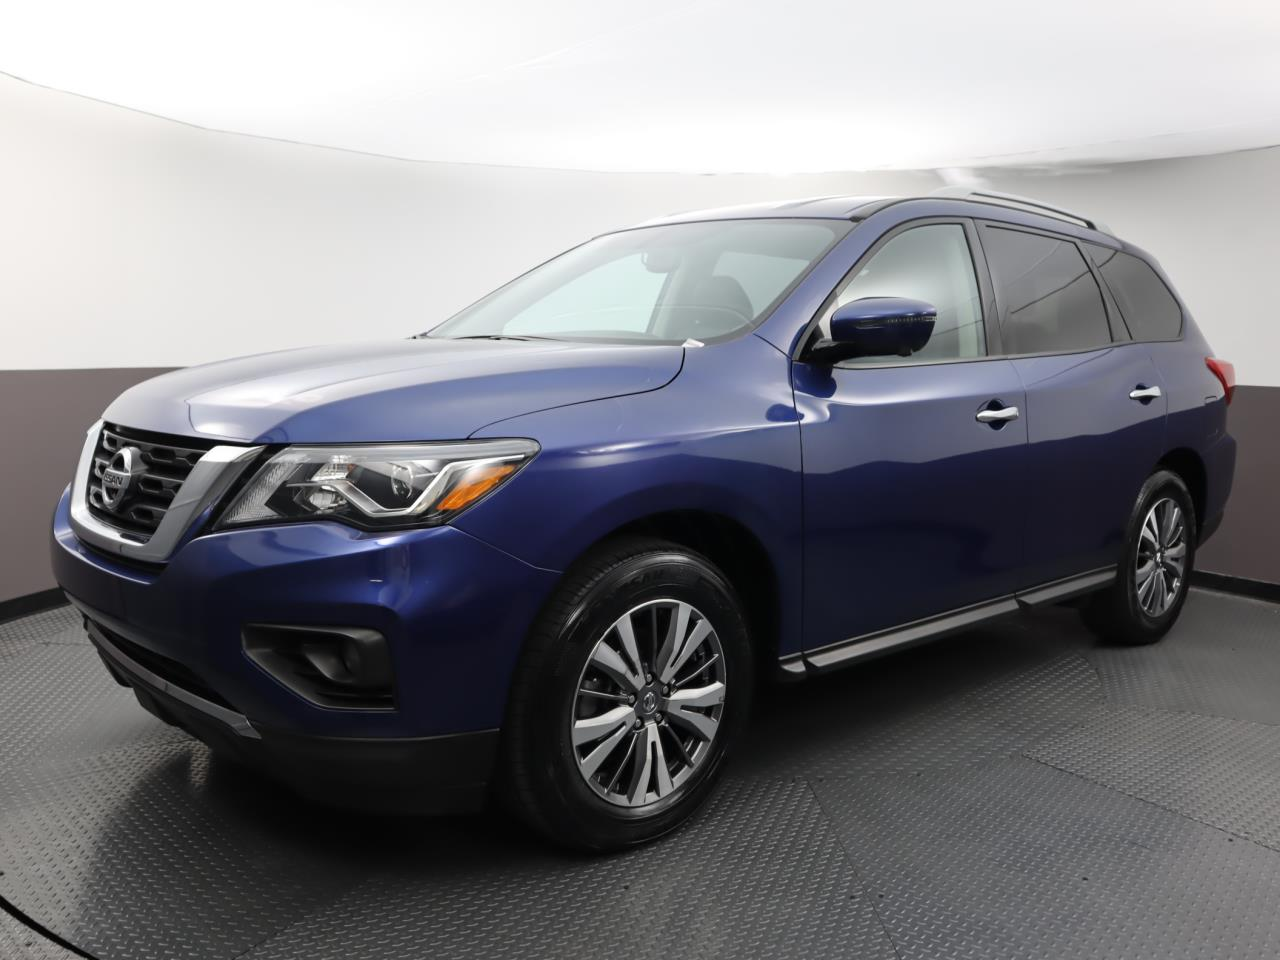 Used NISSAN PATHFINDER 2020 WEST PALM SL